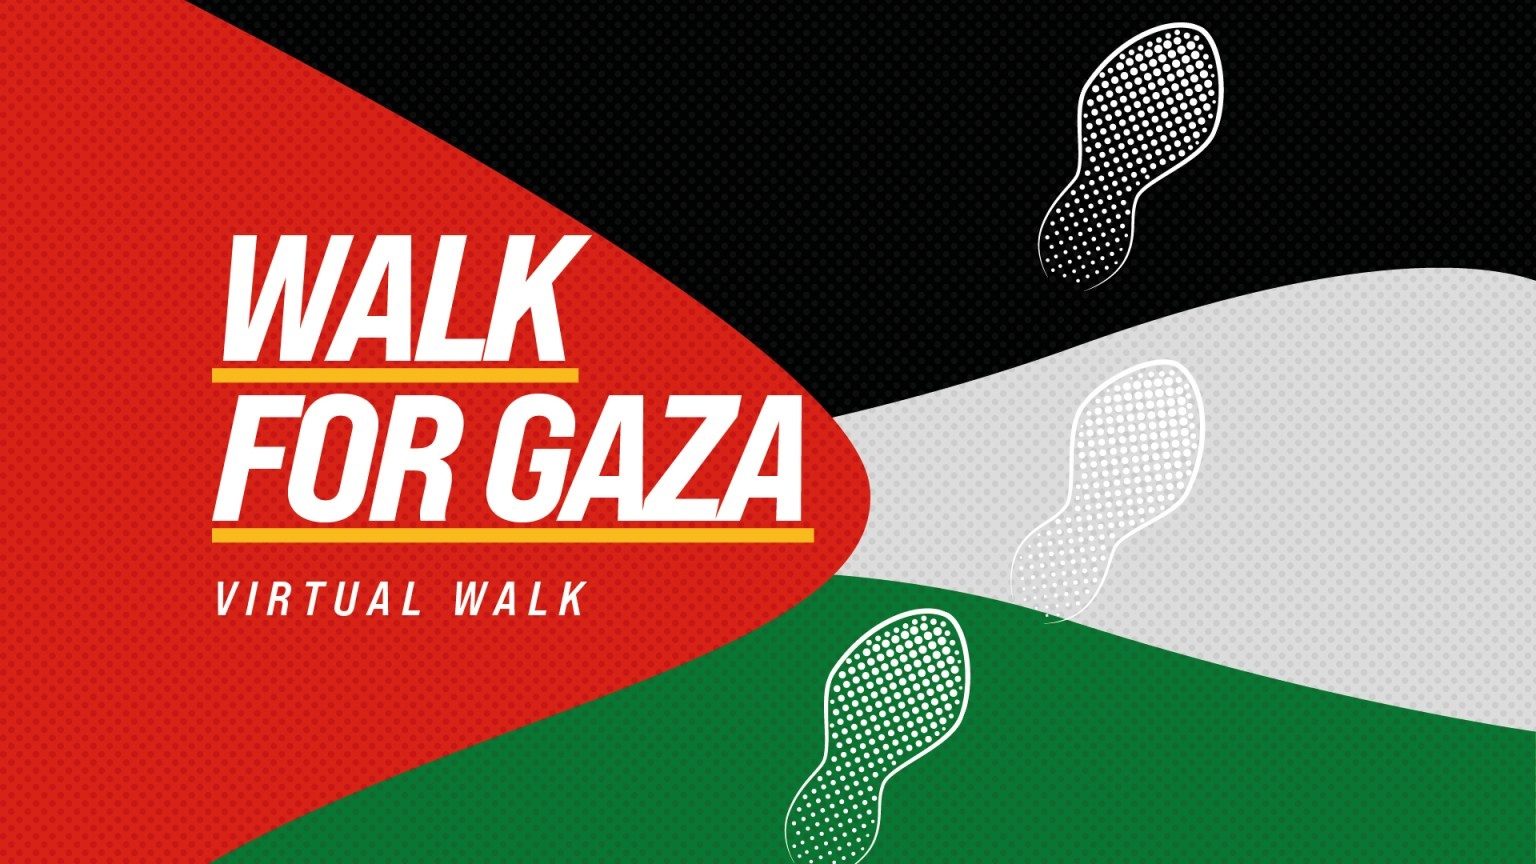 iF Charity Walk For Gaza 2021 Generic Banner